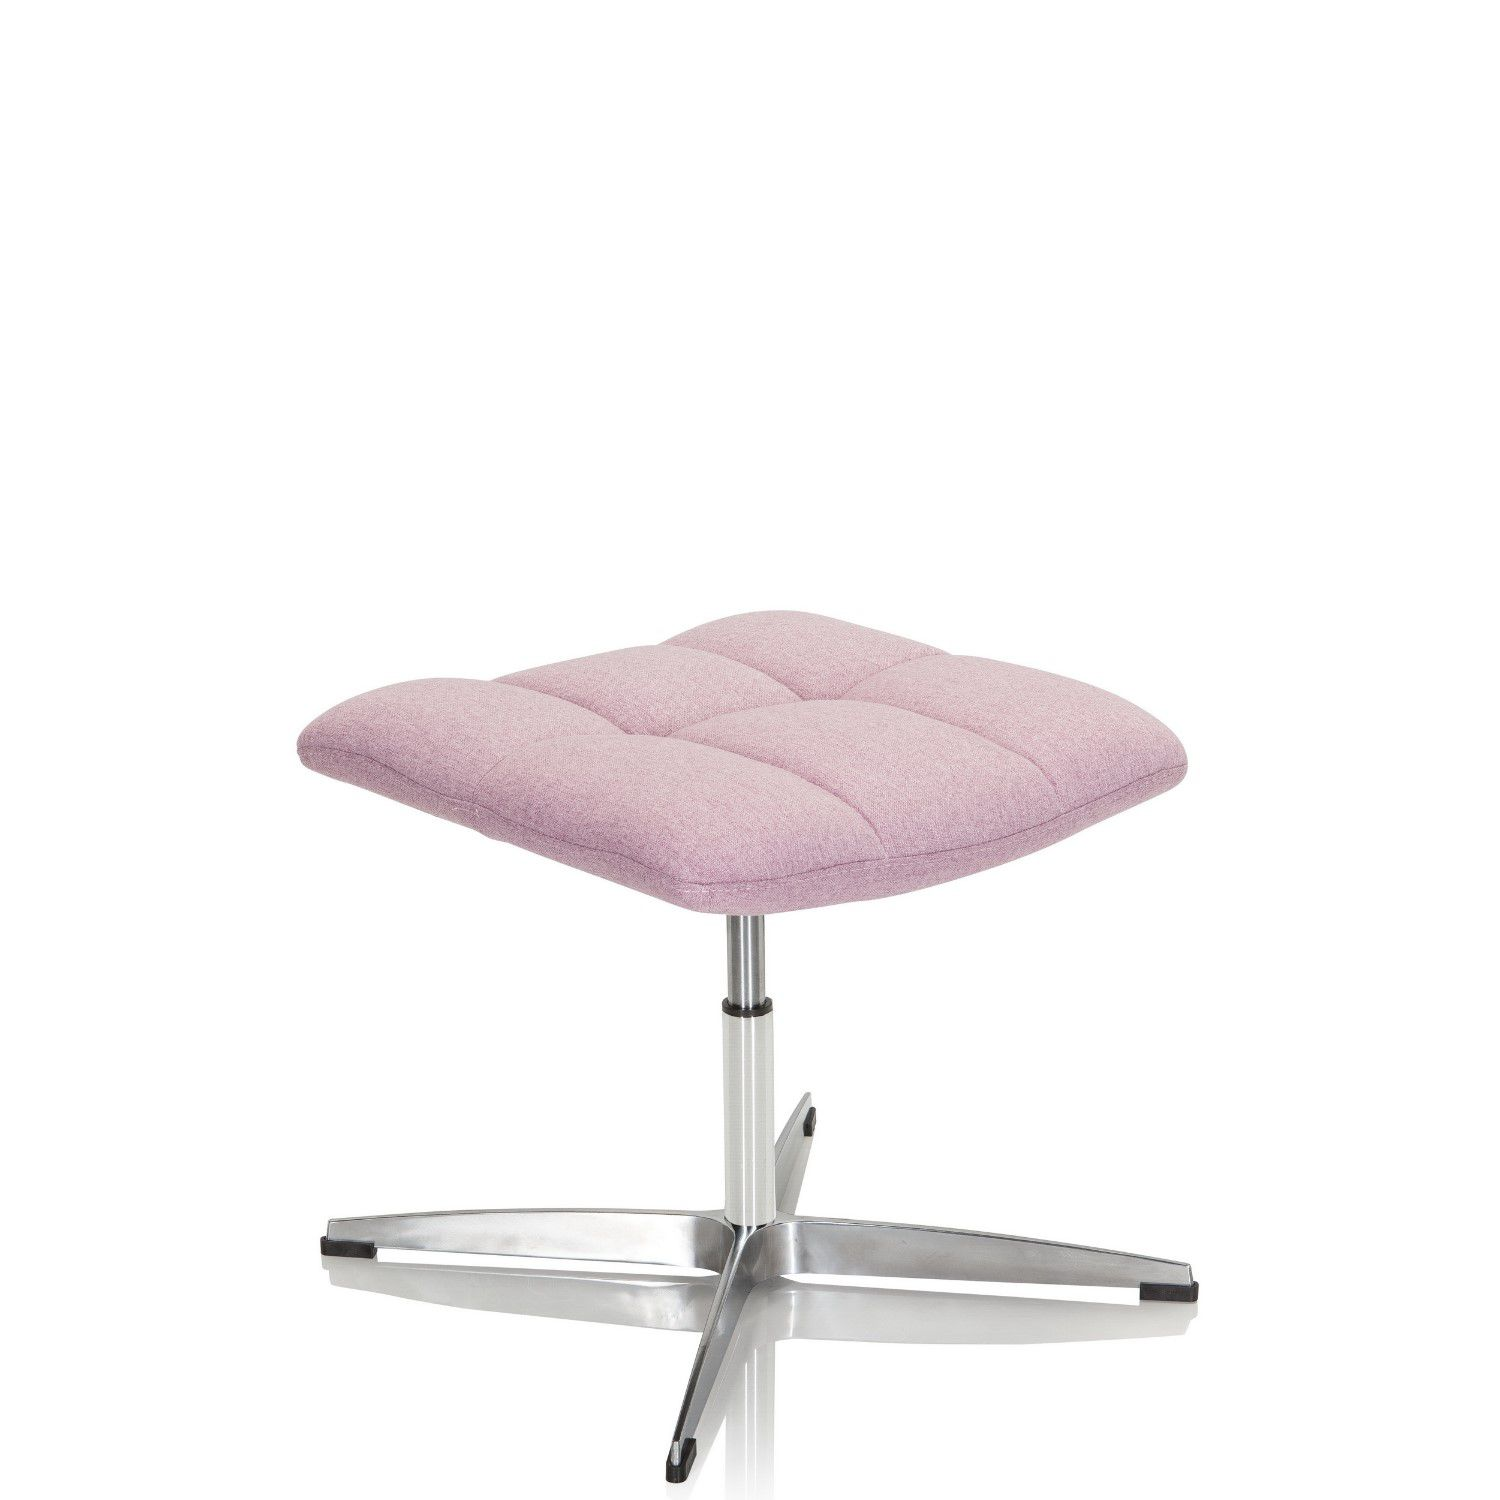 Hocker / Drehstuhl SARANTO Stoff rosa hjh OFFICE